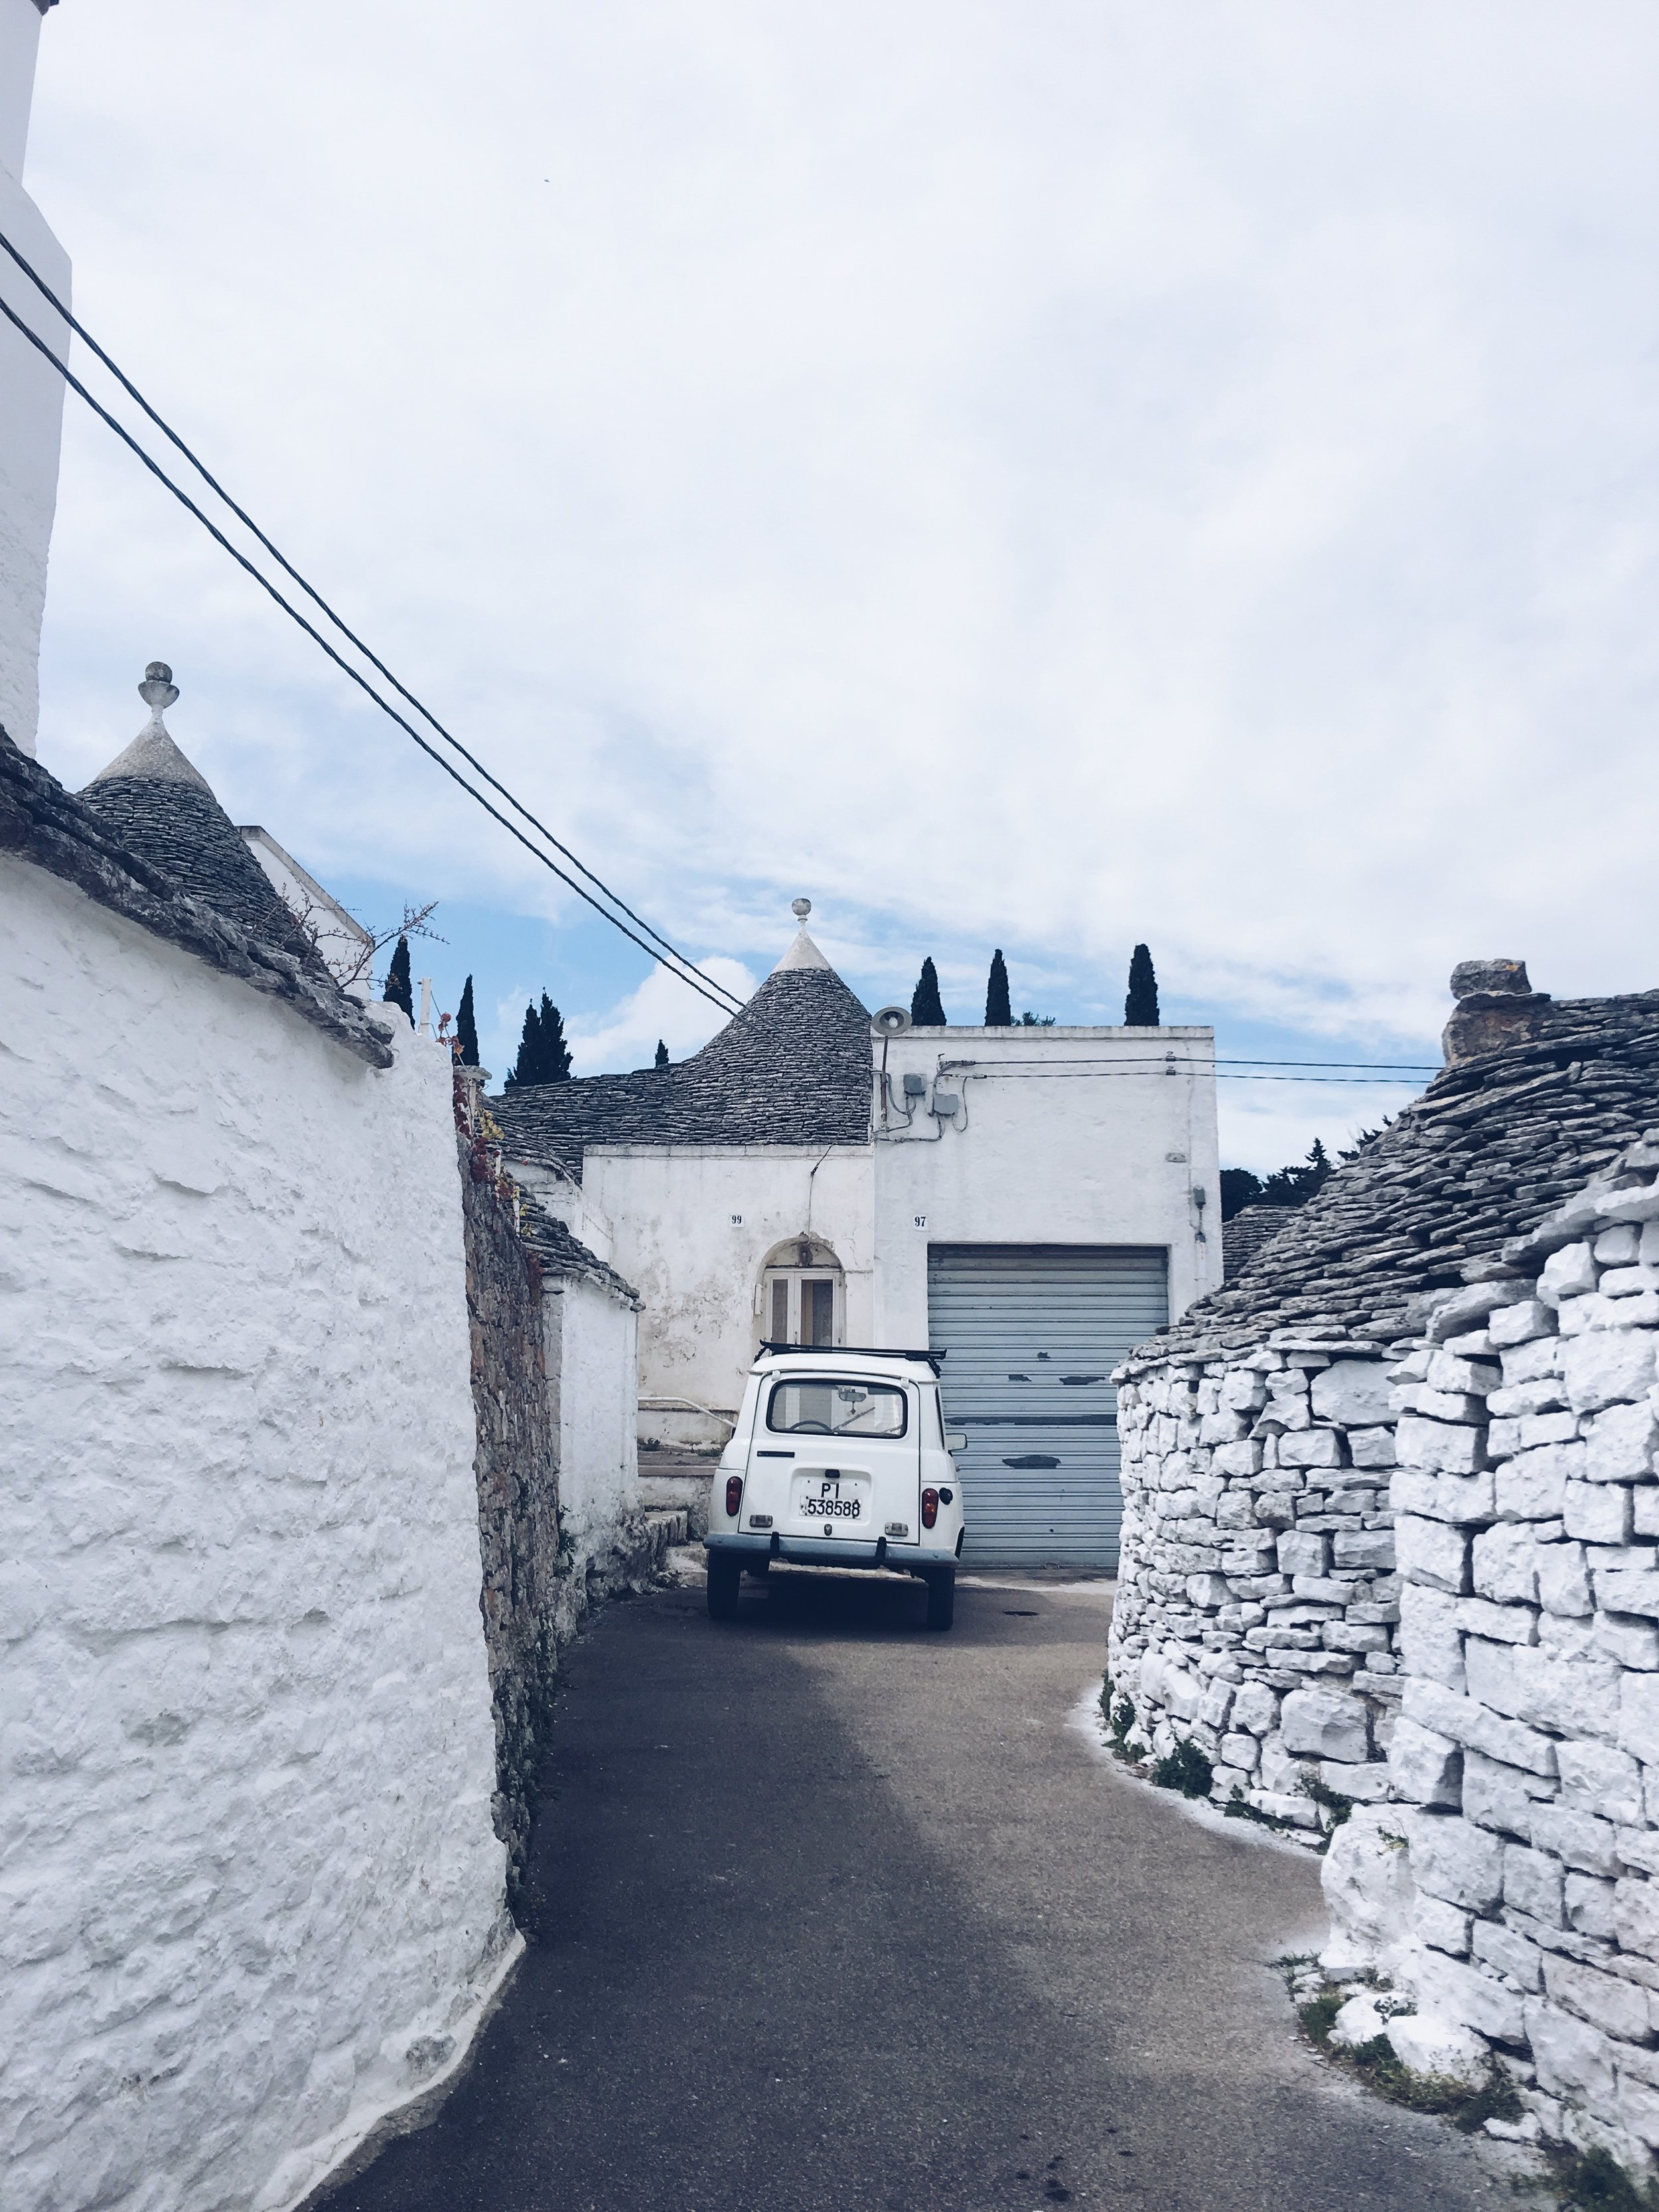 Cutest Trulli (traditional houses) & an old Renault in Arbelobello